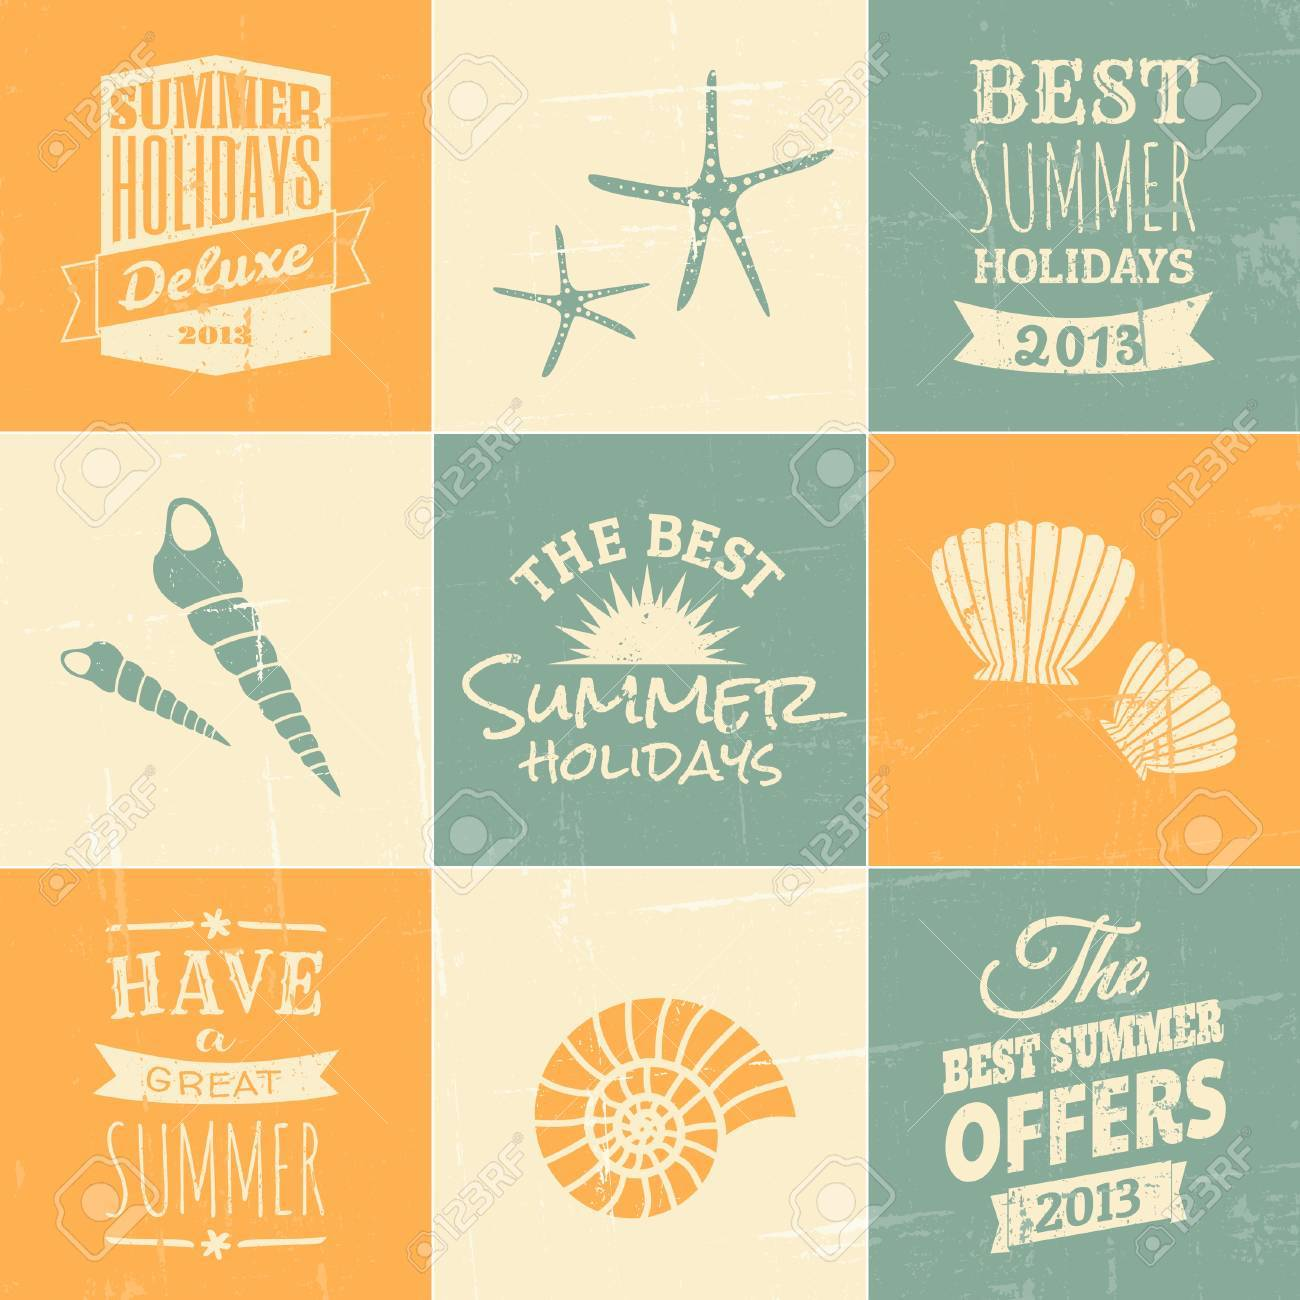 A set of summer typographic designs and icons in blue, beige and yellow. Stock Vector - 20989419